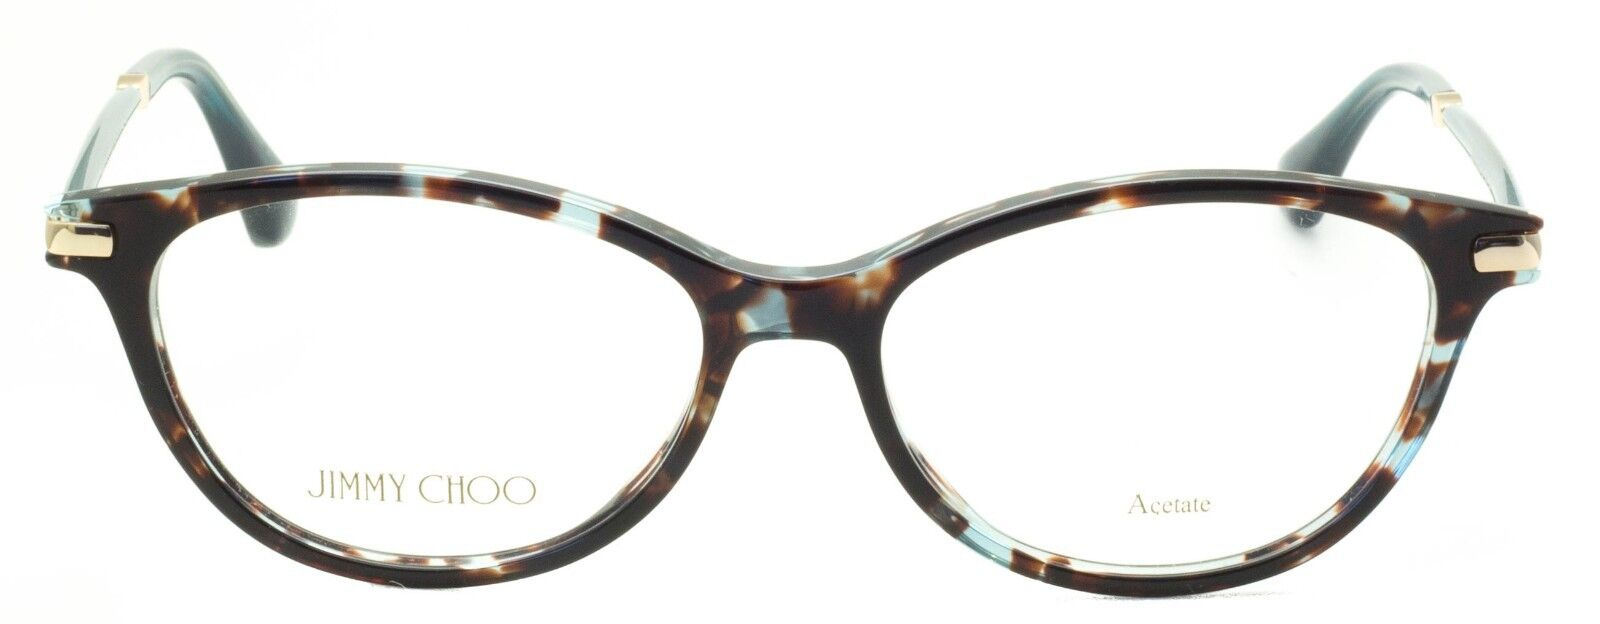 bde6da8a5c0 Jimmy Choo 153 1m5 Eyewear Glasses RX Optical Glasses Frames Italy - Trusted  for sale online